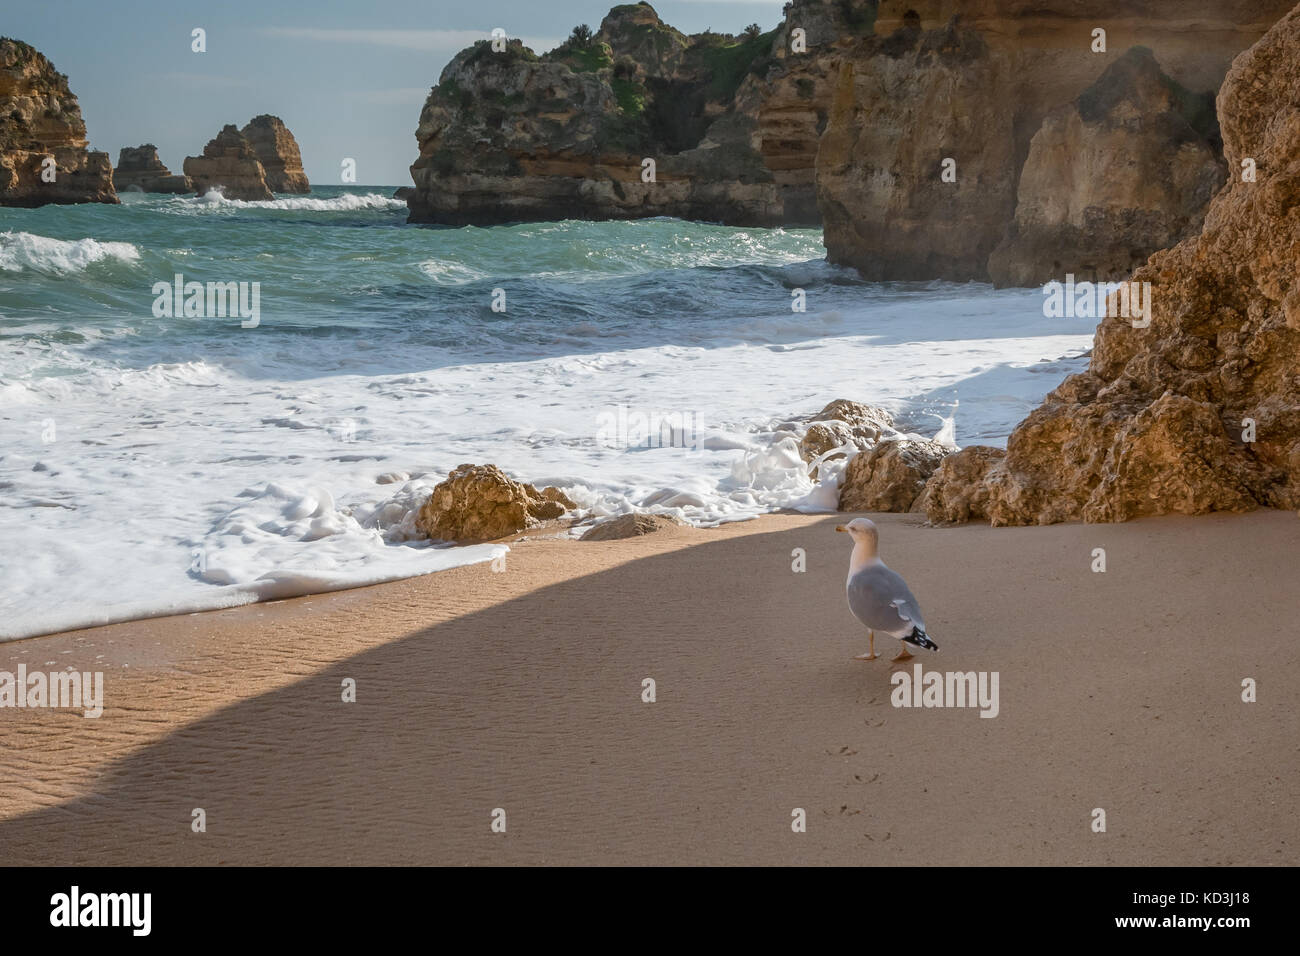 Sea bird walking along sandy beach surrounded by high cliffs, rock formations Stock Photo